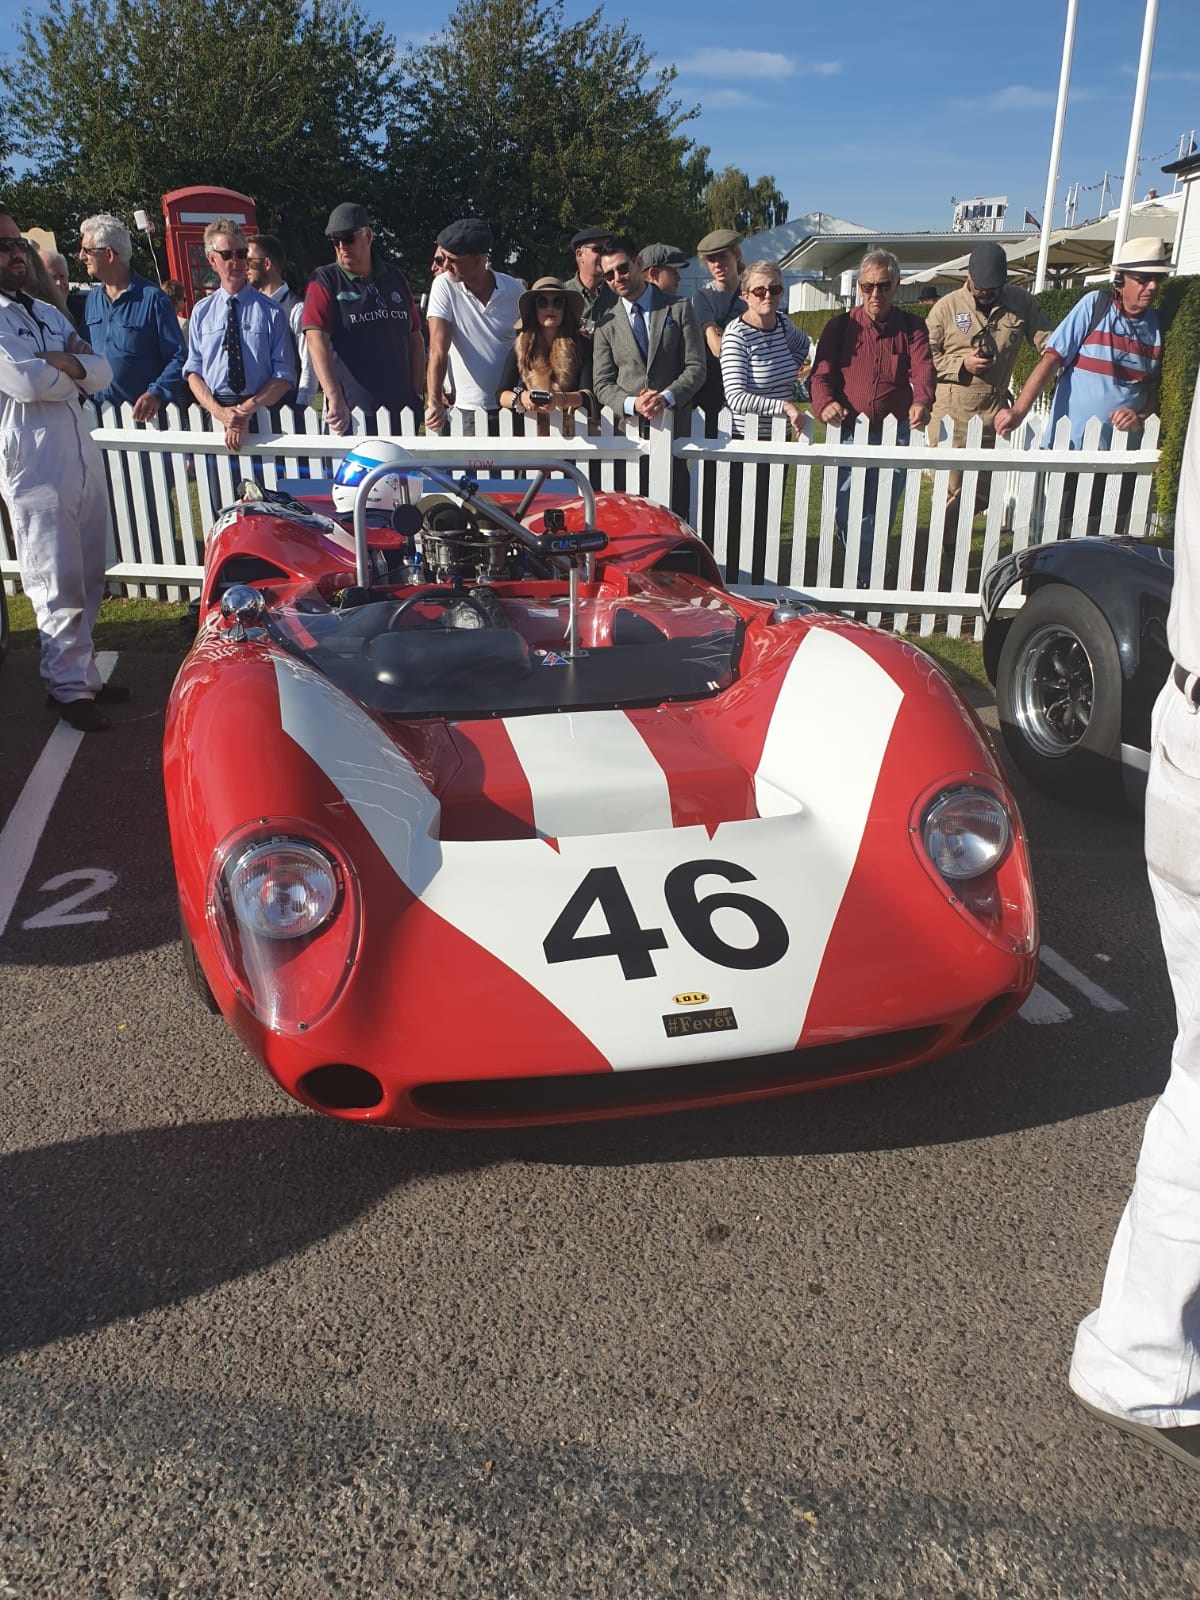 Mike Whitaker - Goodwood Revival 2019